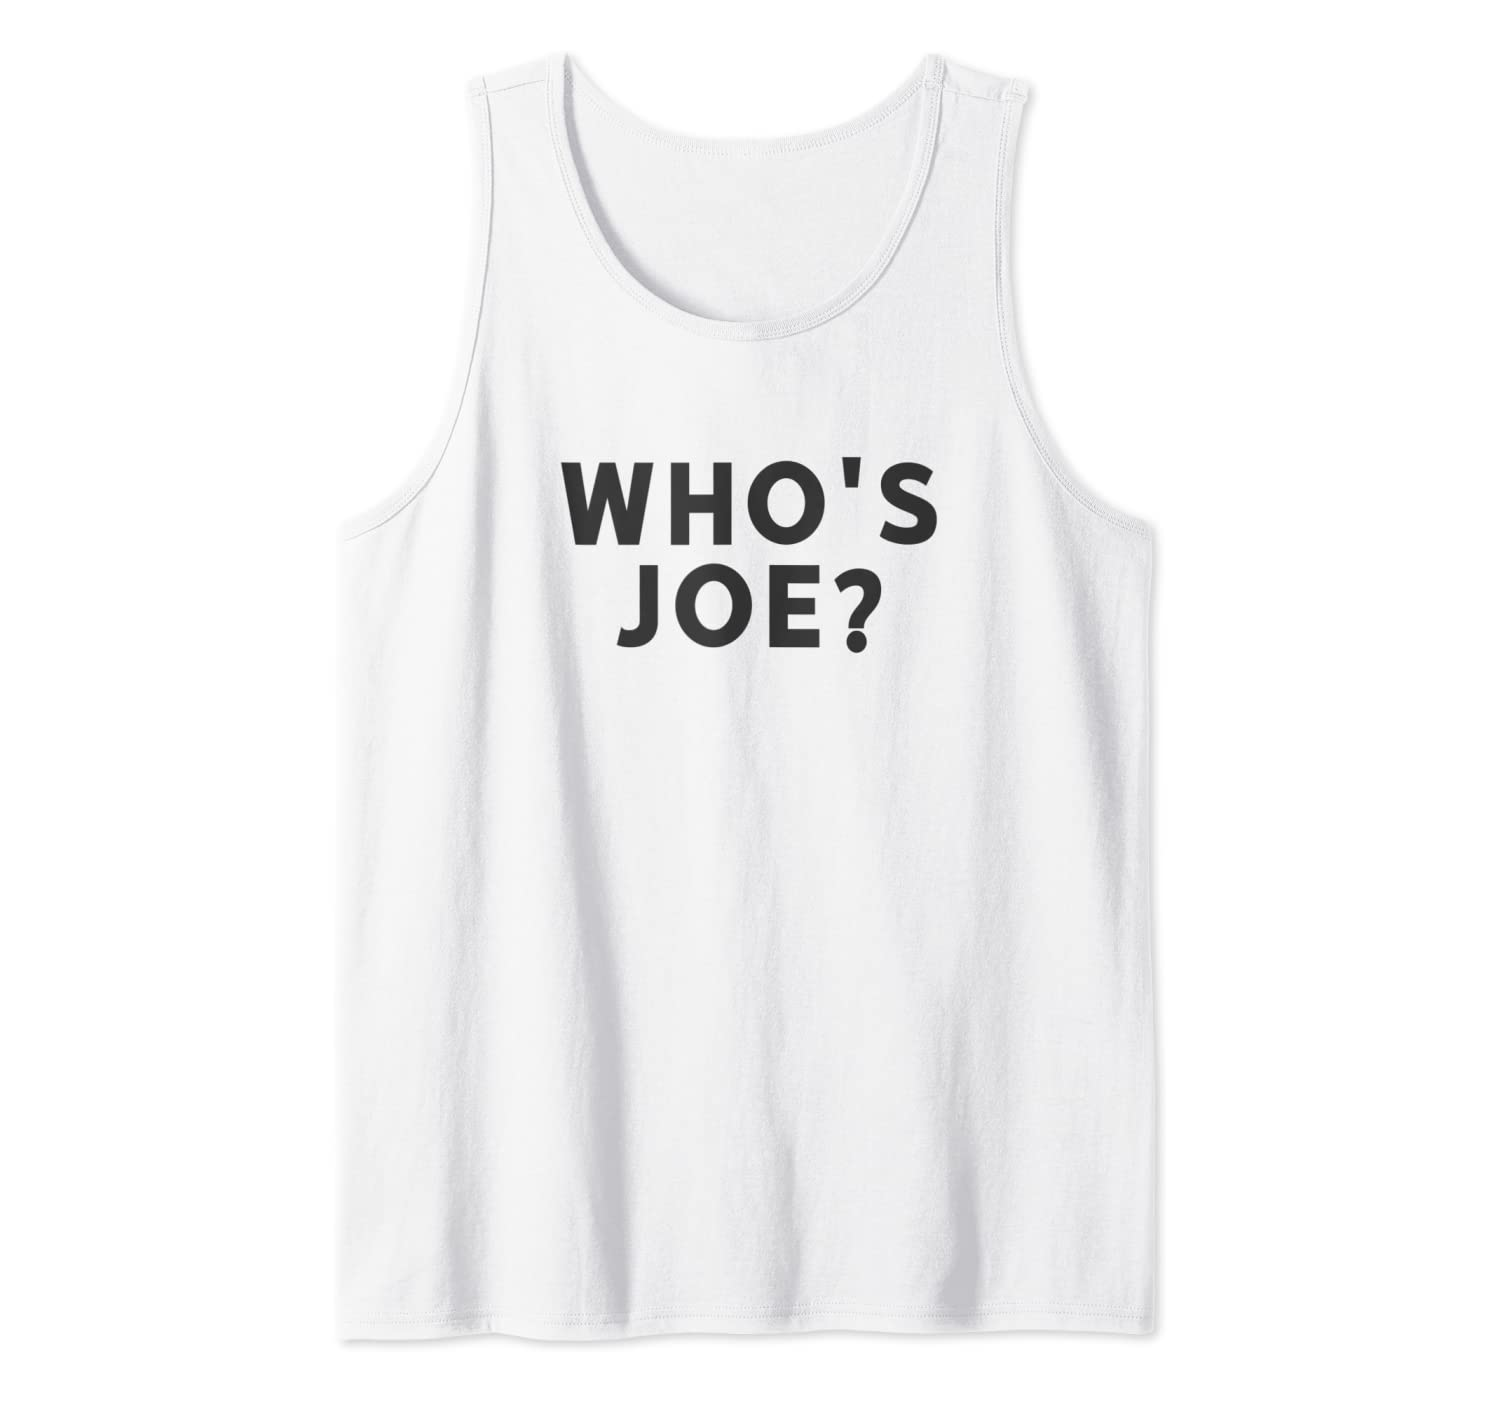 Amazon Com Who S Joe Knock Knock Joke Joe Mama Dank Meme Pun Prank Tank Top Clothing A big list of joe jokes! amazon com who s joe knock knock joke